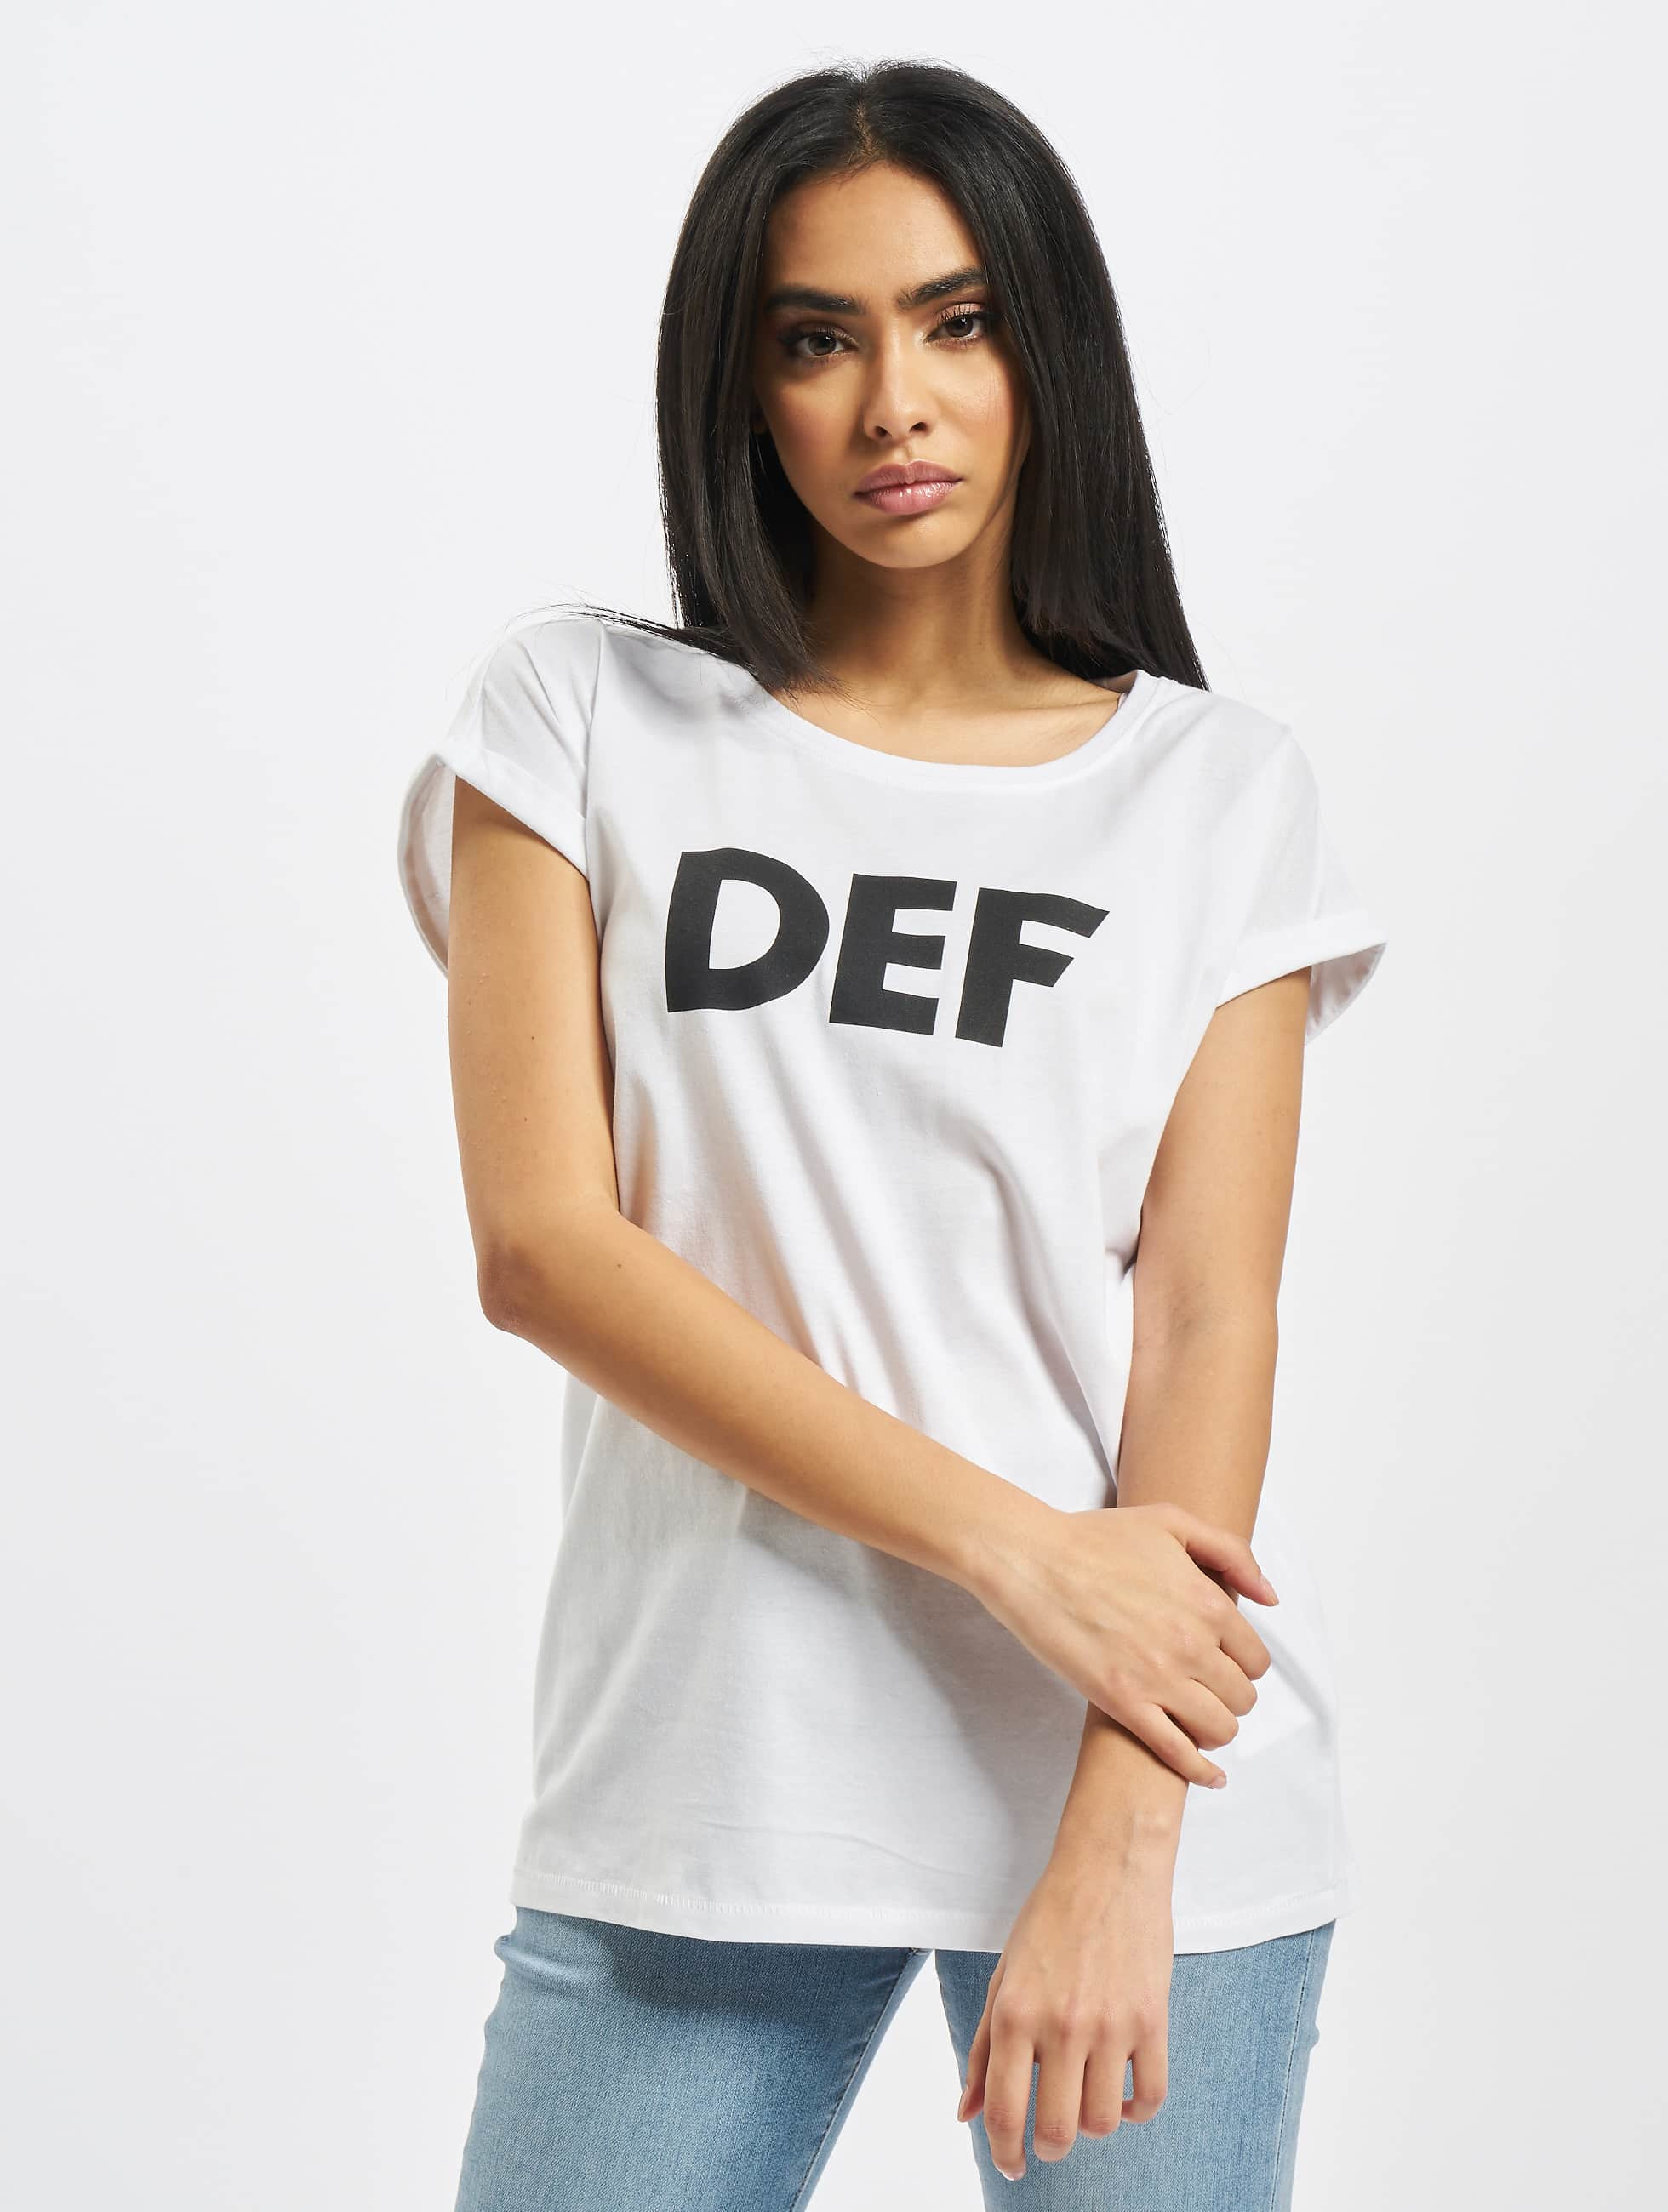 DEF / T-Shirt Sizza in white L